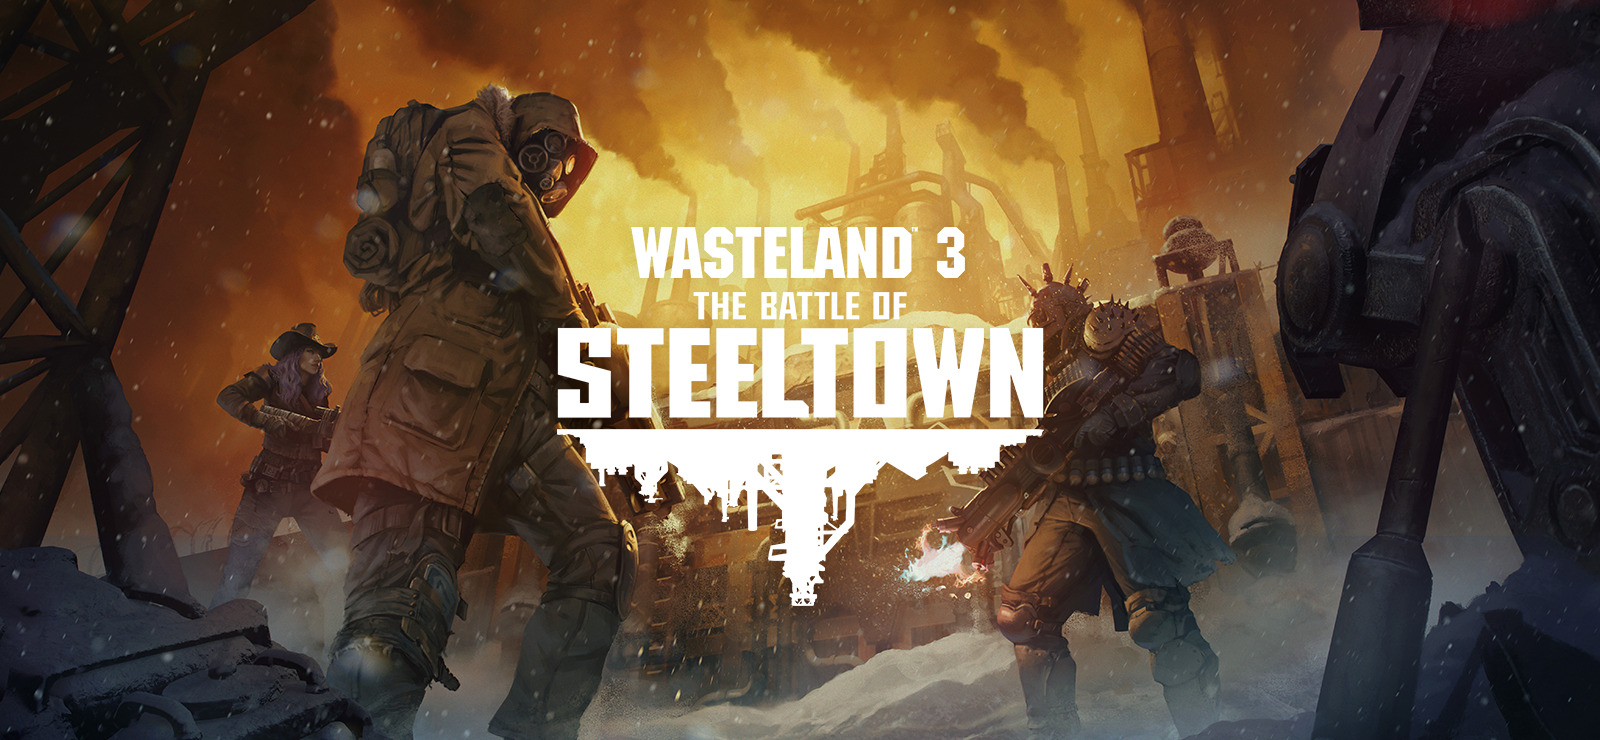 Wasteland 3: The Battle of Steeltown Free Download